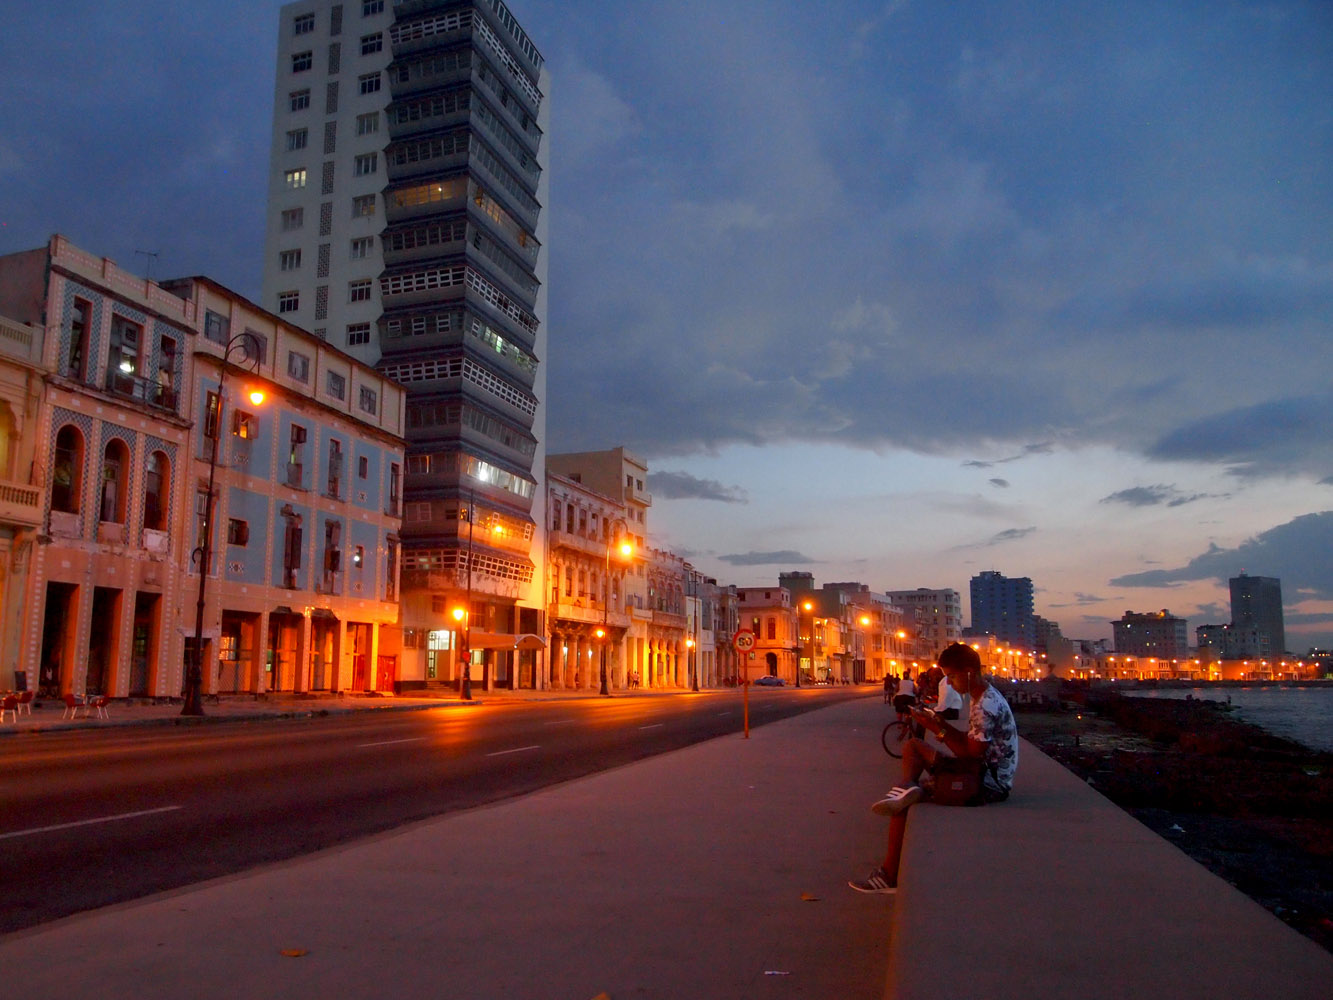 Cuba-Havana-Malecon-Evening-Lights